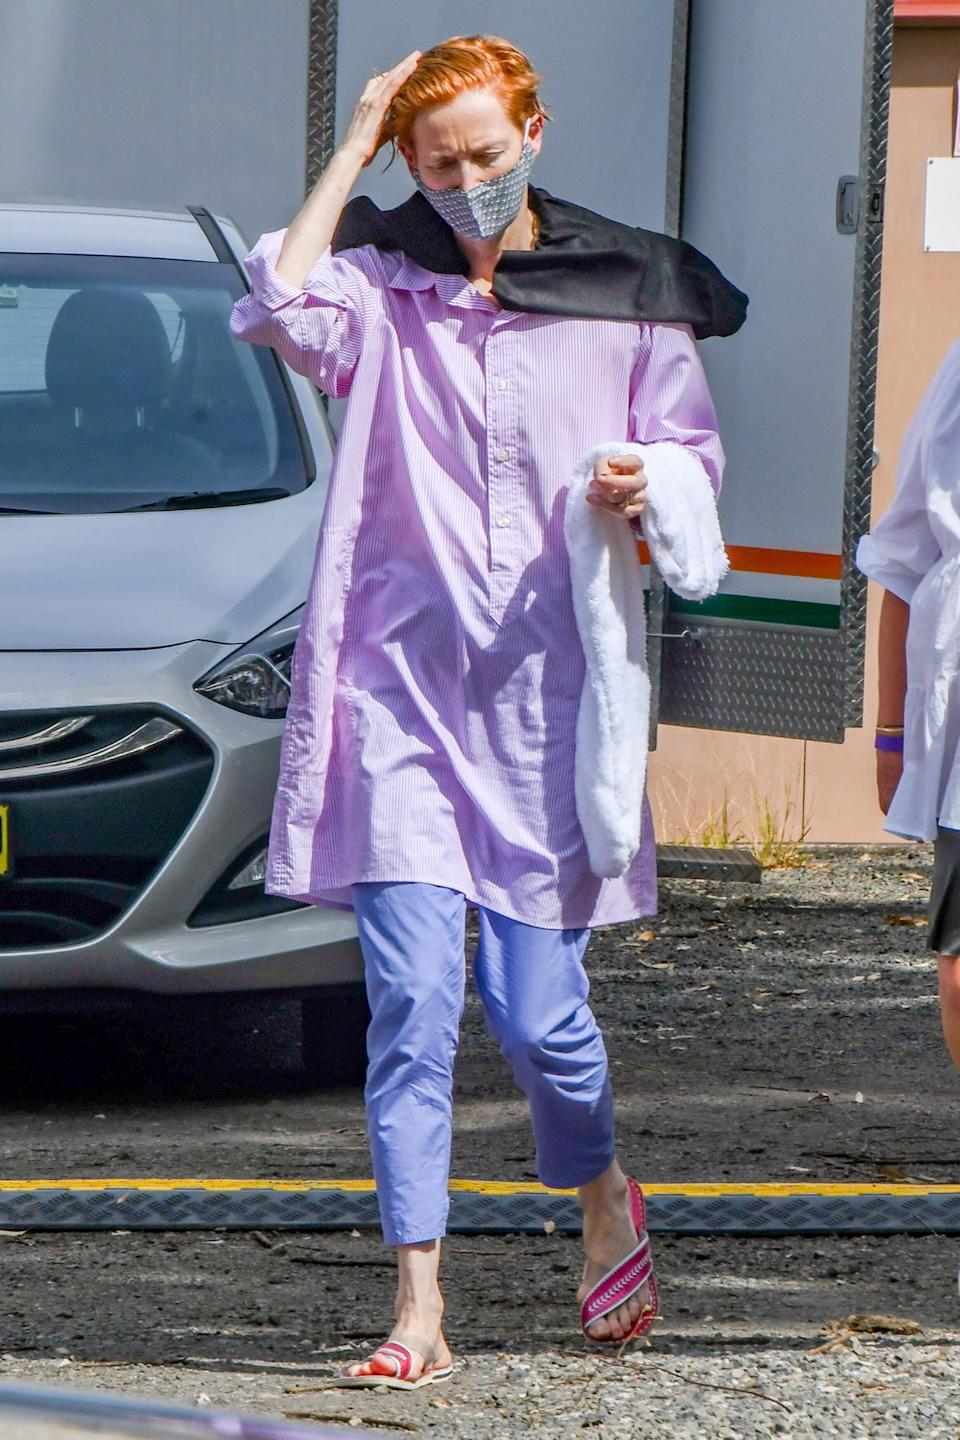 <p>Tilda Swinton goes bold with her ensemble (and hair!) on the Sydney, Australia, set of her new film, <em>Three Thousand Years of Longing.</em></p>